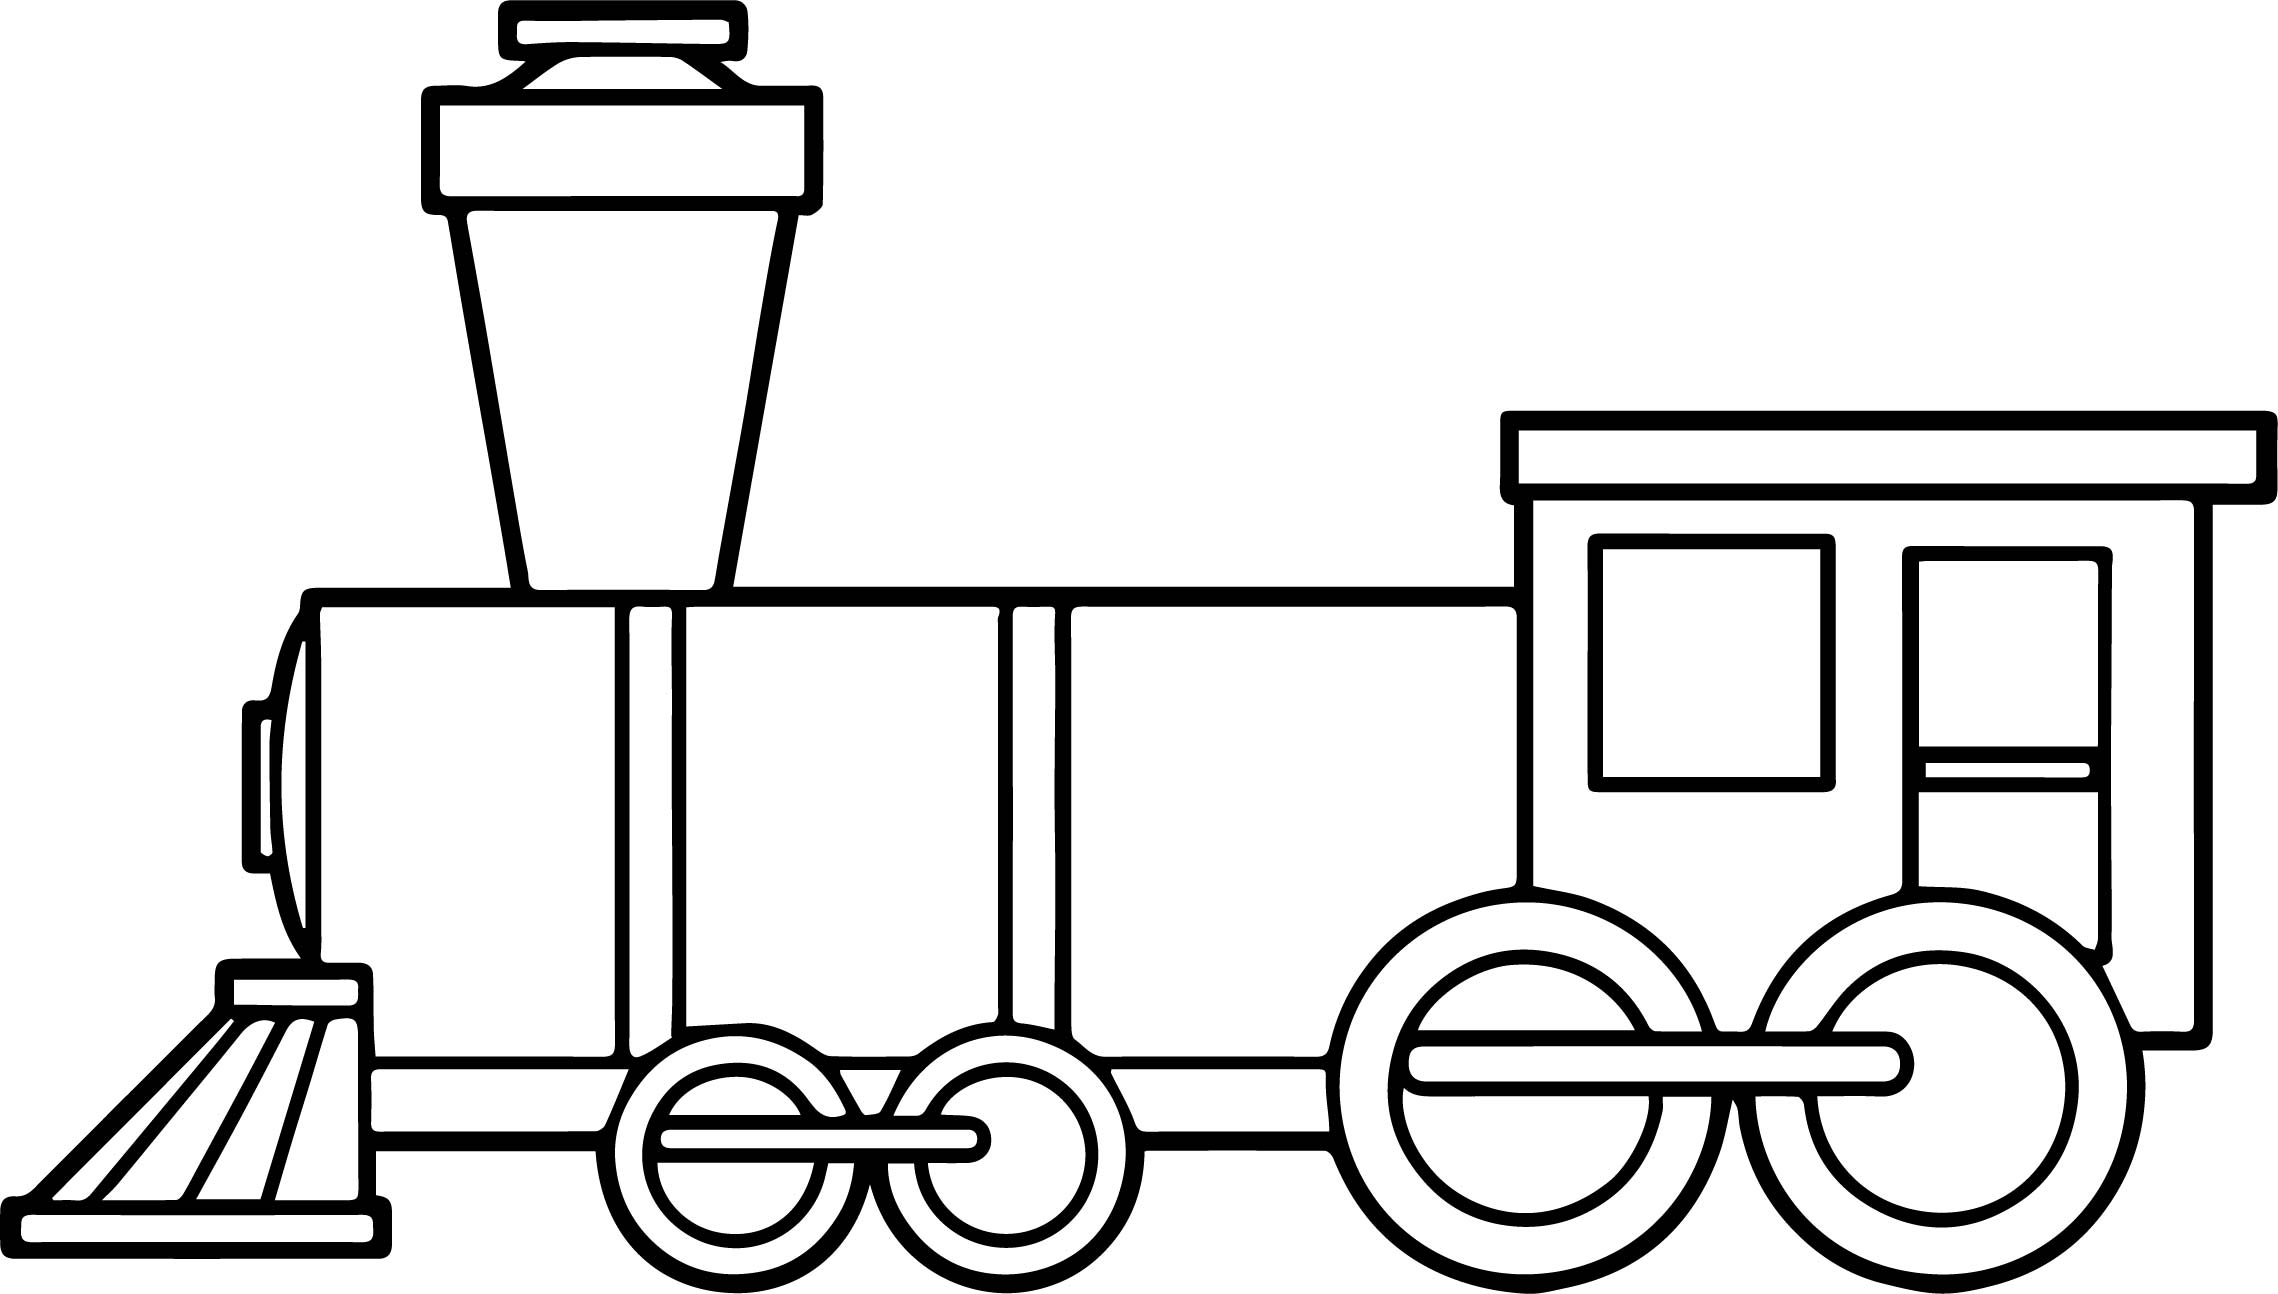 Box Car Coloring Pages : Boxcar children coloring pages ideas